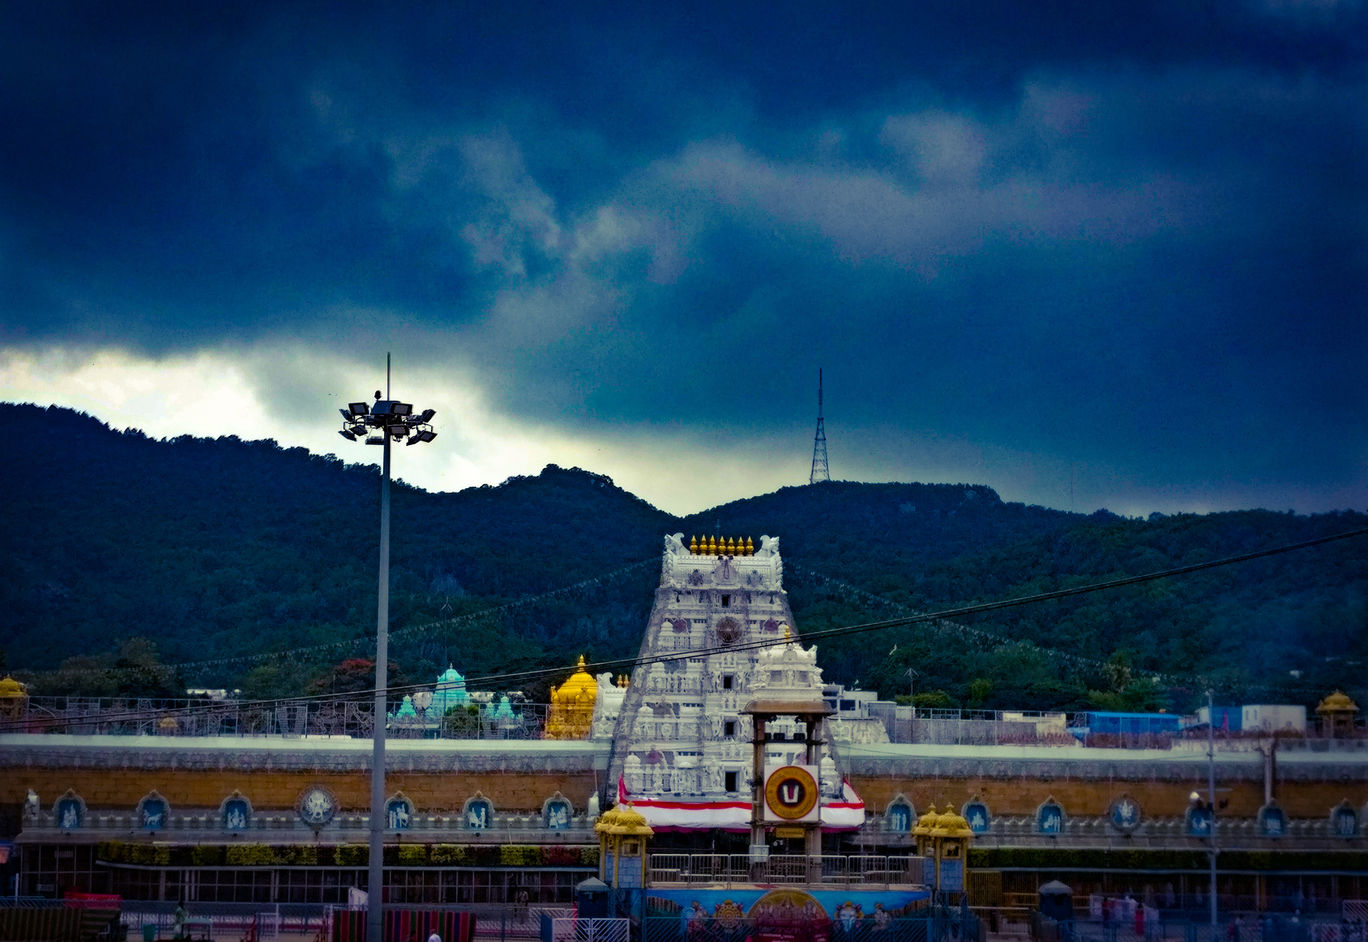 Photo of Tirumala By Sahaj Kumar